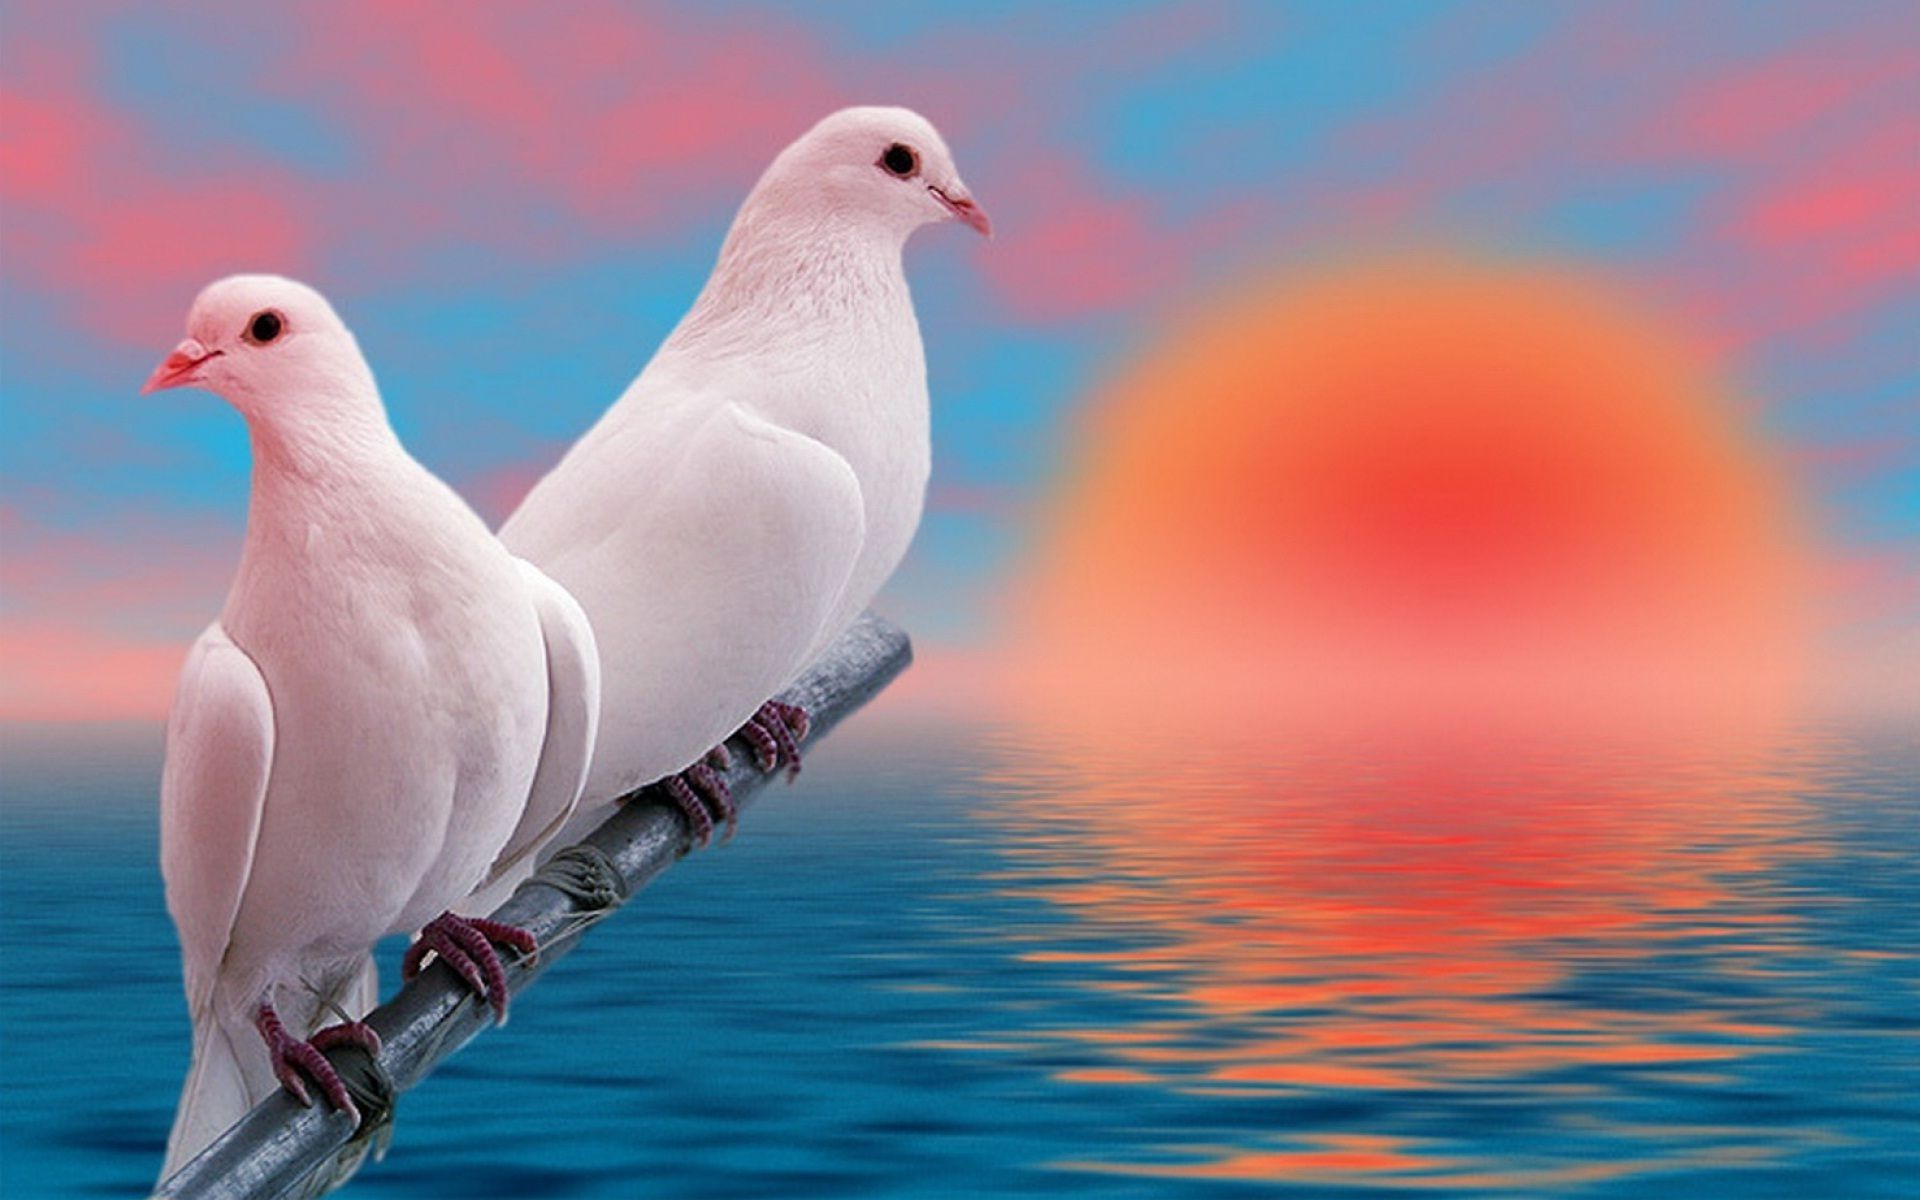 10 New Beautiful Wallpapers Of Love Birds Full Hd 1920 1080 For Pc Desktop Birds Wallpaper Hd Bird Wallpaper Love Birds